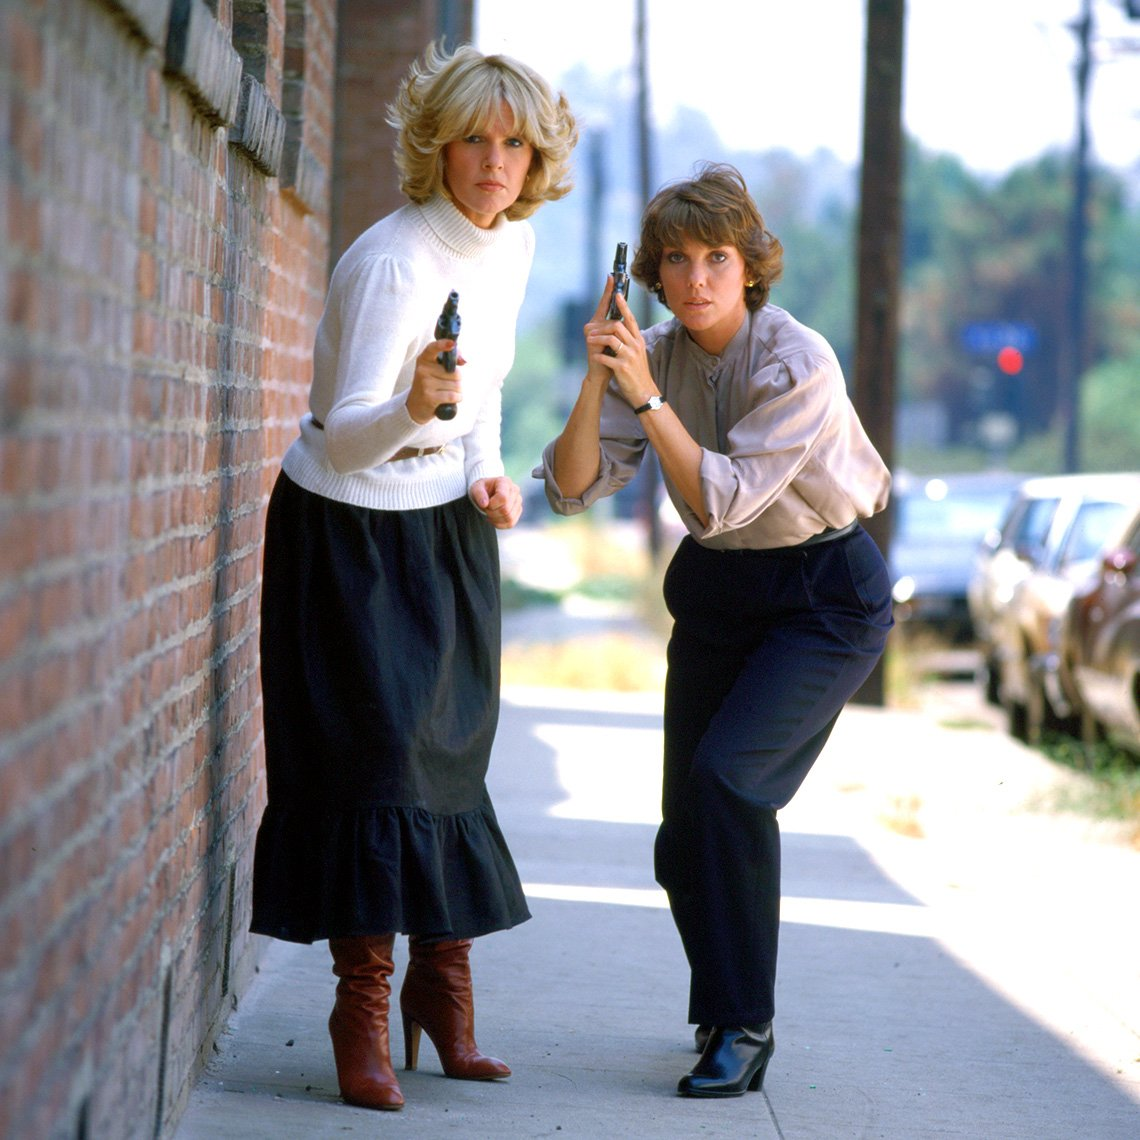 Sharon Gless and Tyne Daly as cops in 'Cagney & Lacey'